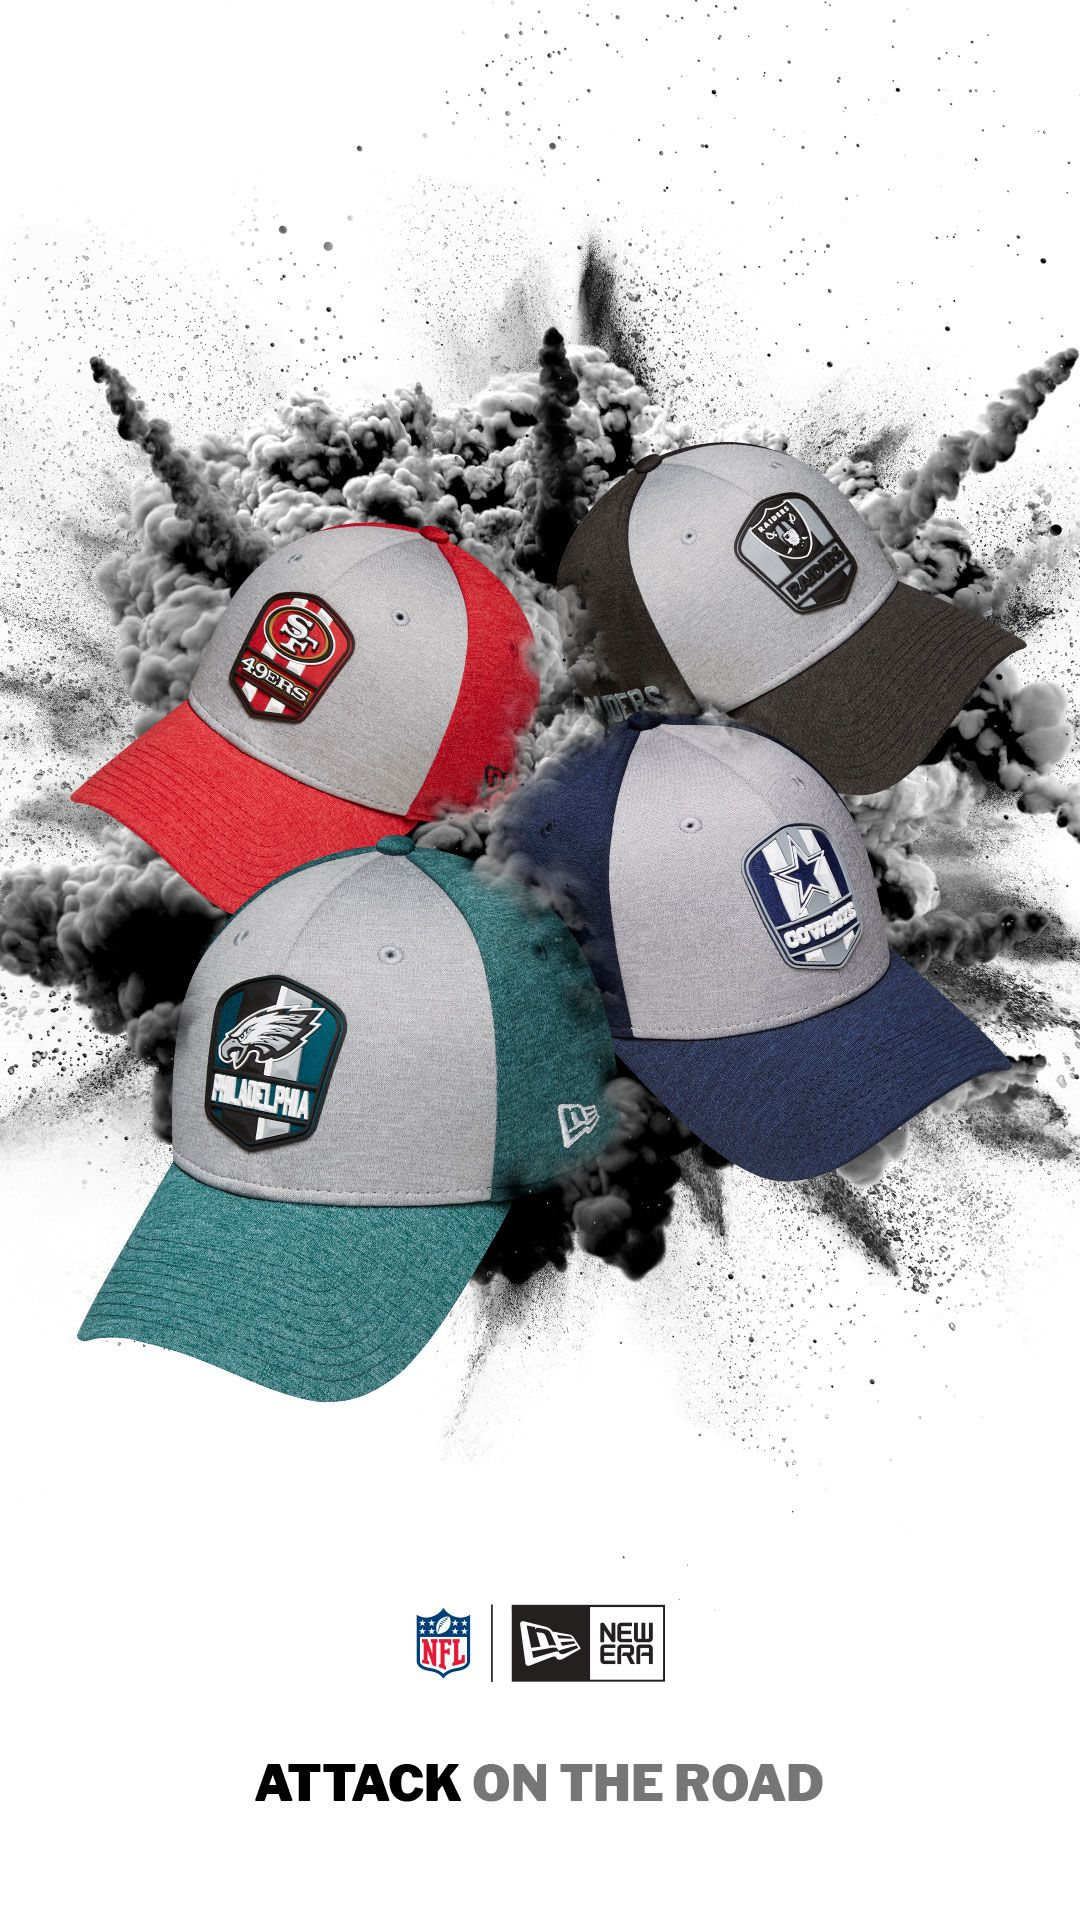 f7cbcf2b4d9 The 2018 Sideline Collection Aaway game hat features the team shield on the  front